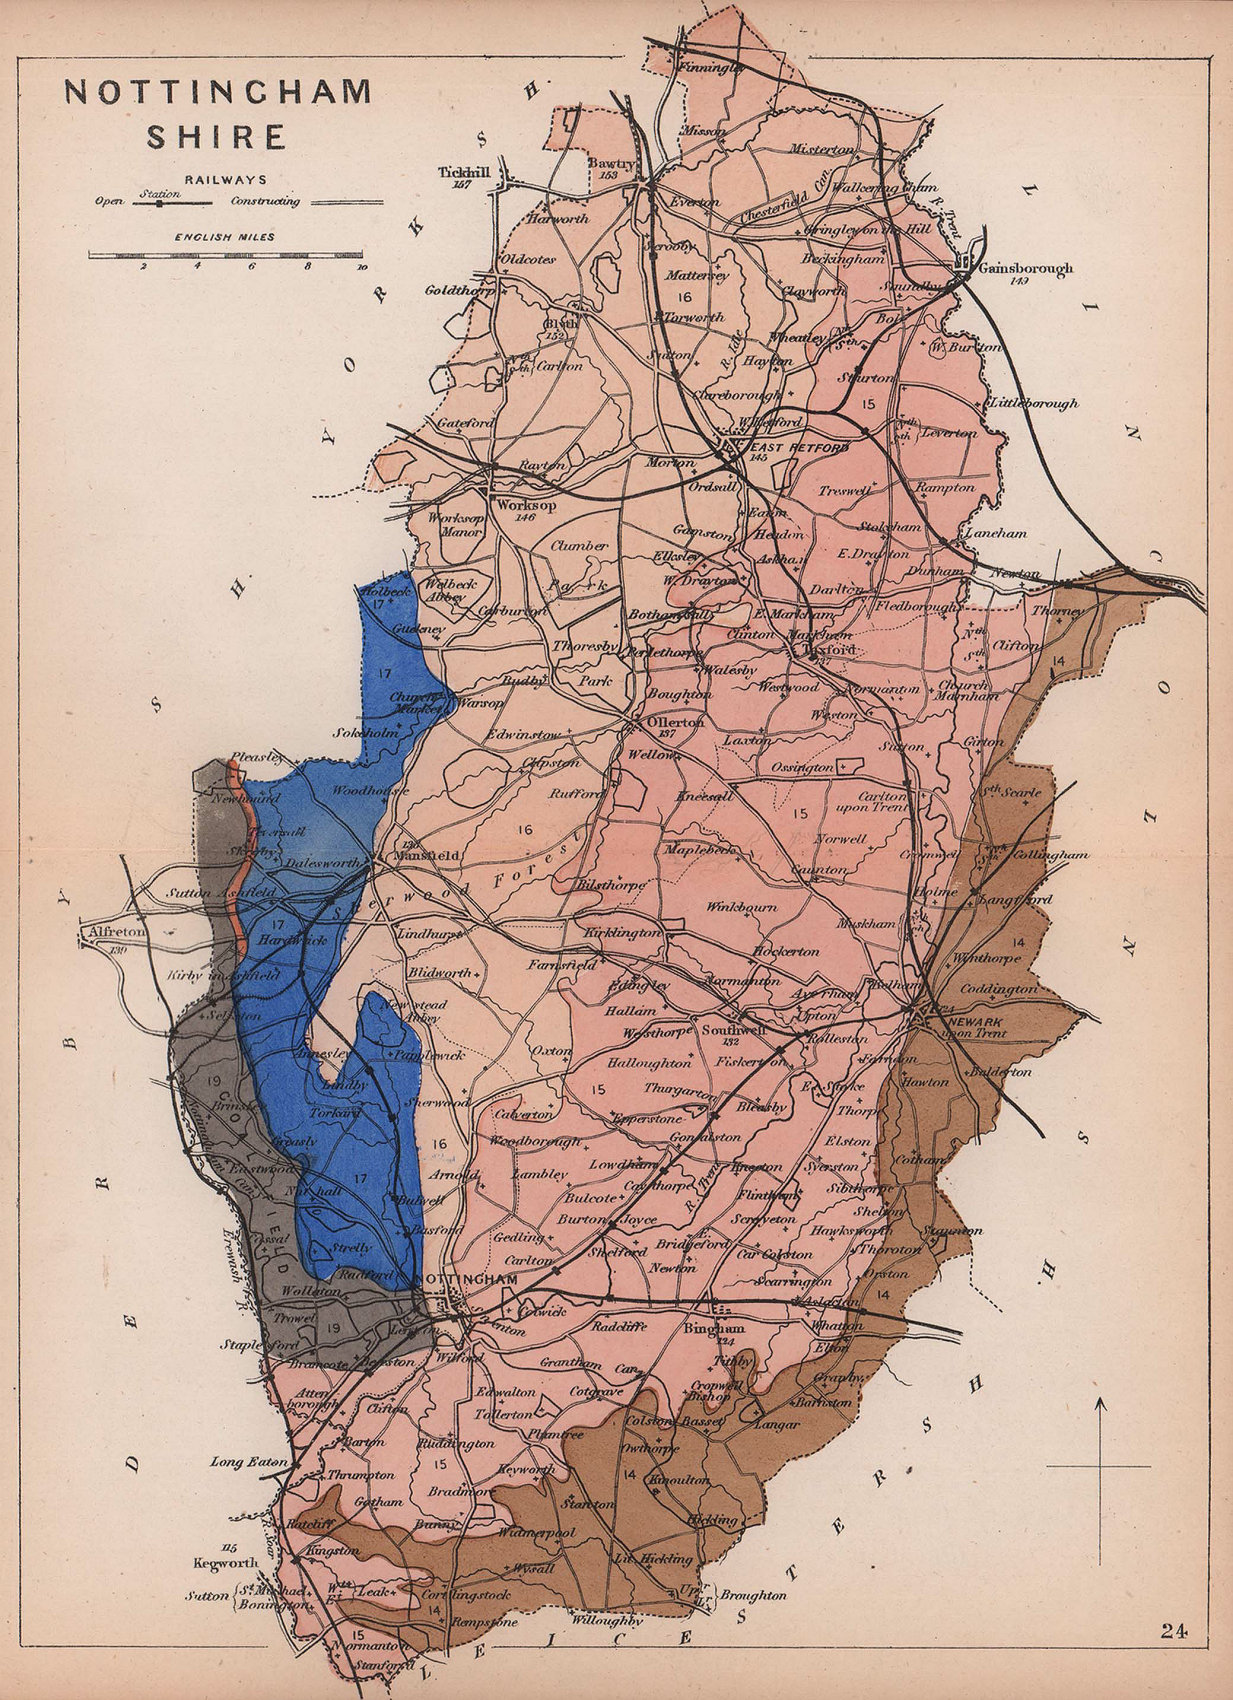 NOTTINGHAMSHIRE antique geological county map by James Reynolds 1864